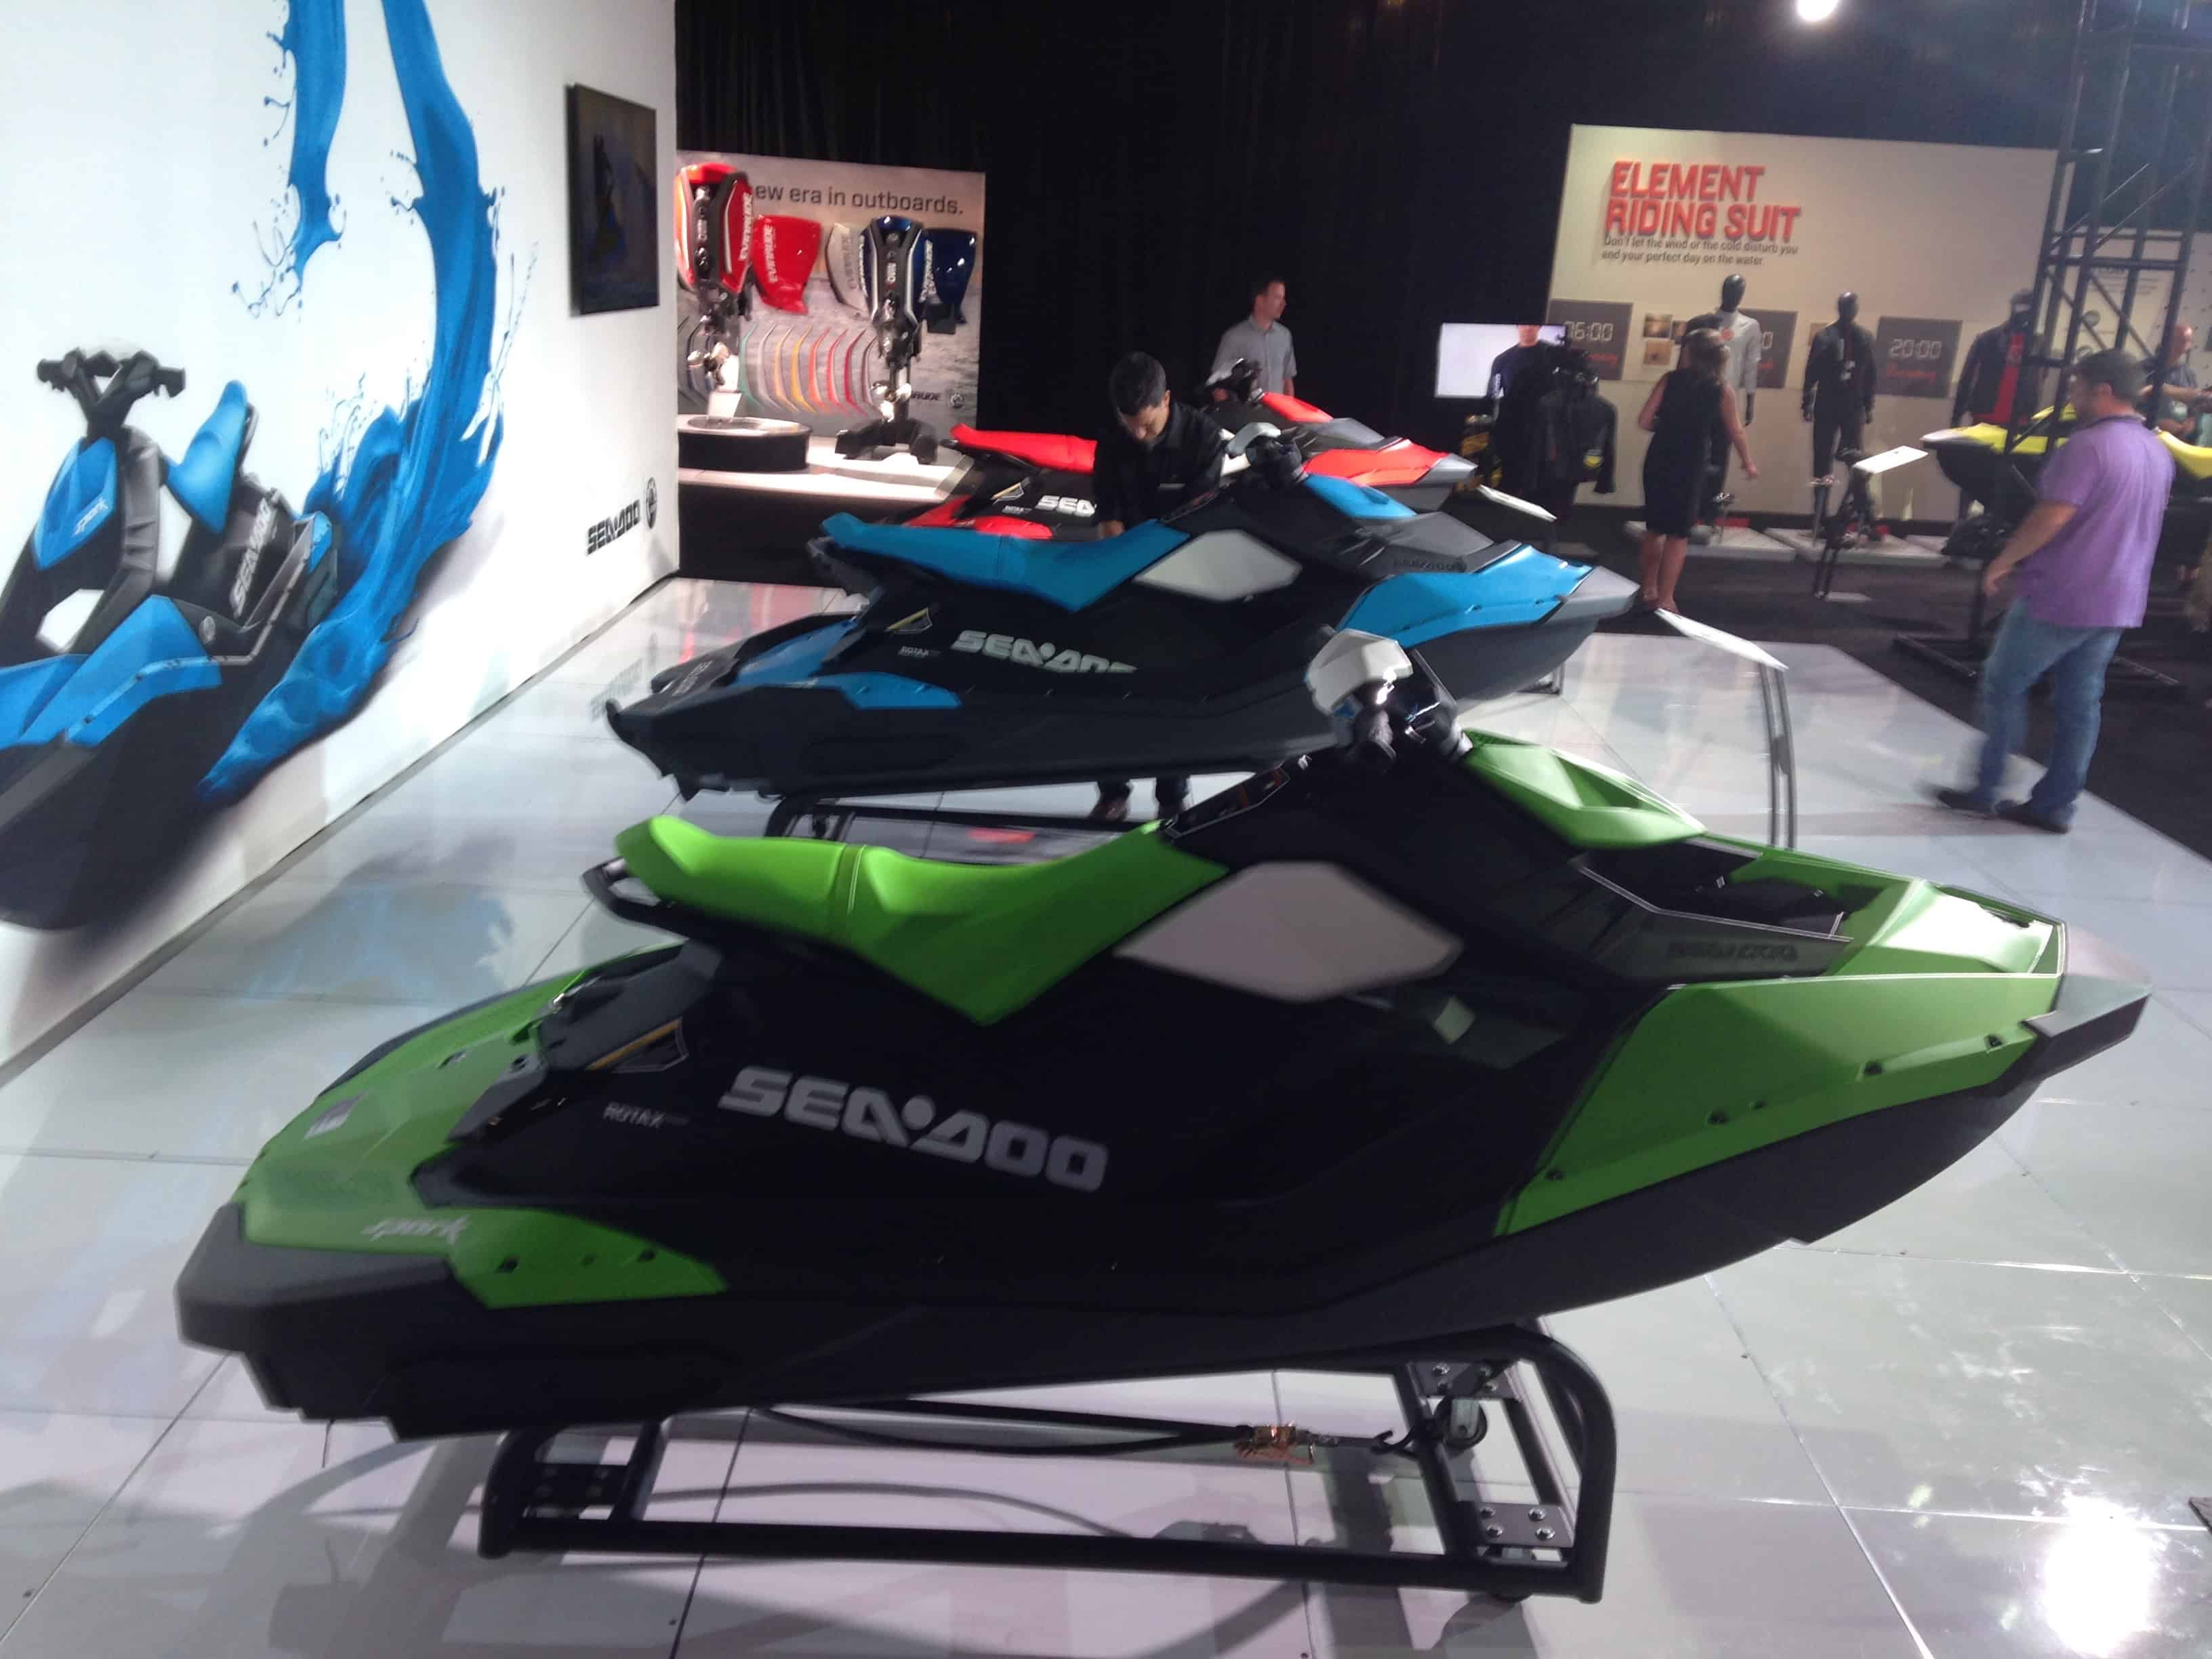 2016 seadoo new model line up release steven in sales models with ibr on sparks are now coming with the convenience package and the rf dess key like the bigger seadoos have also seadoo mention that you can fandeluxe Image collections